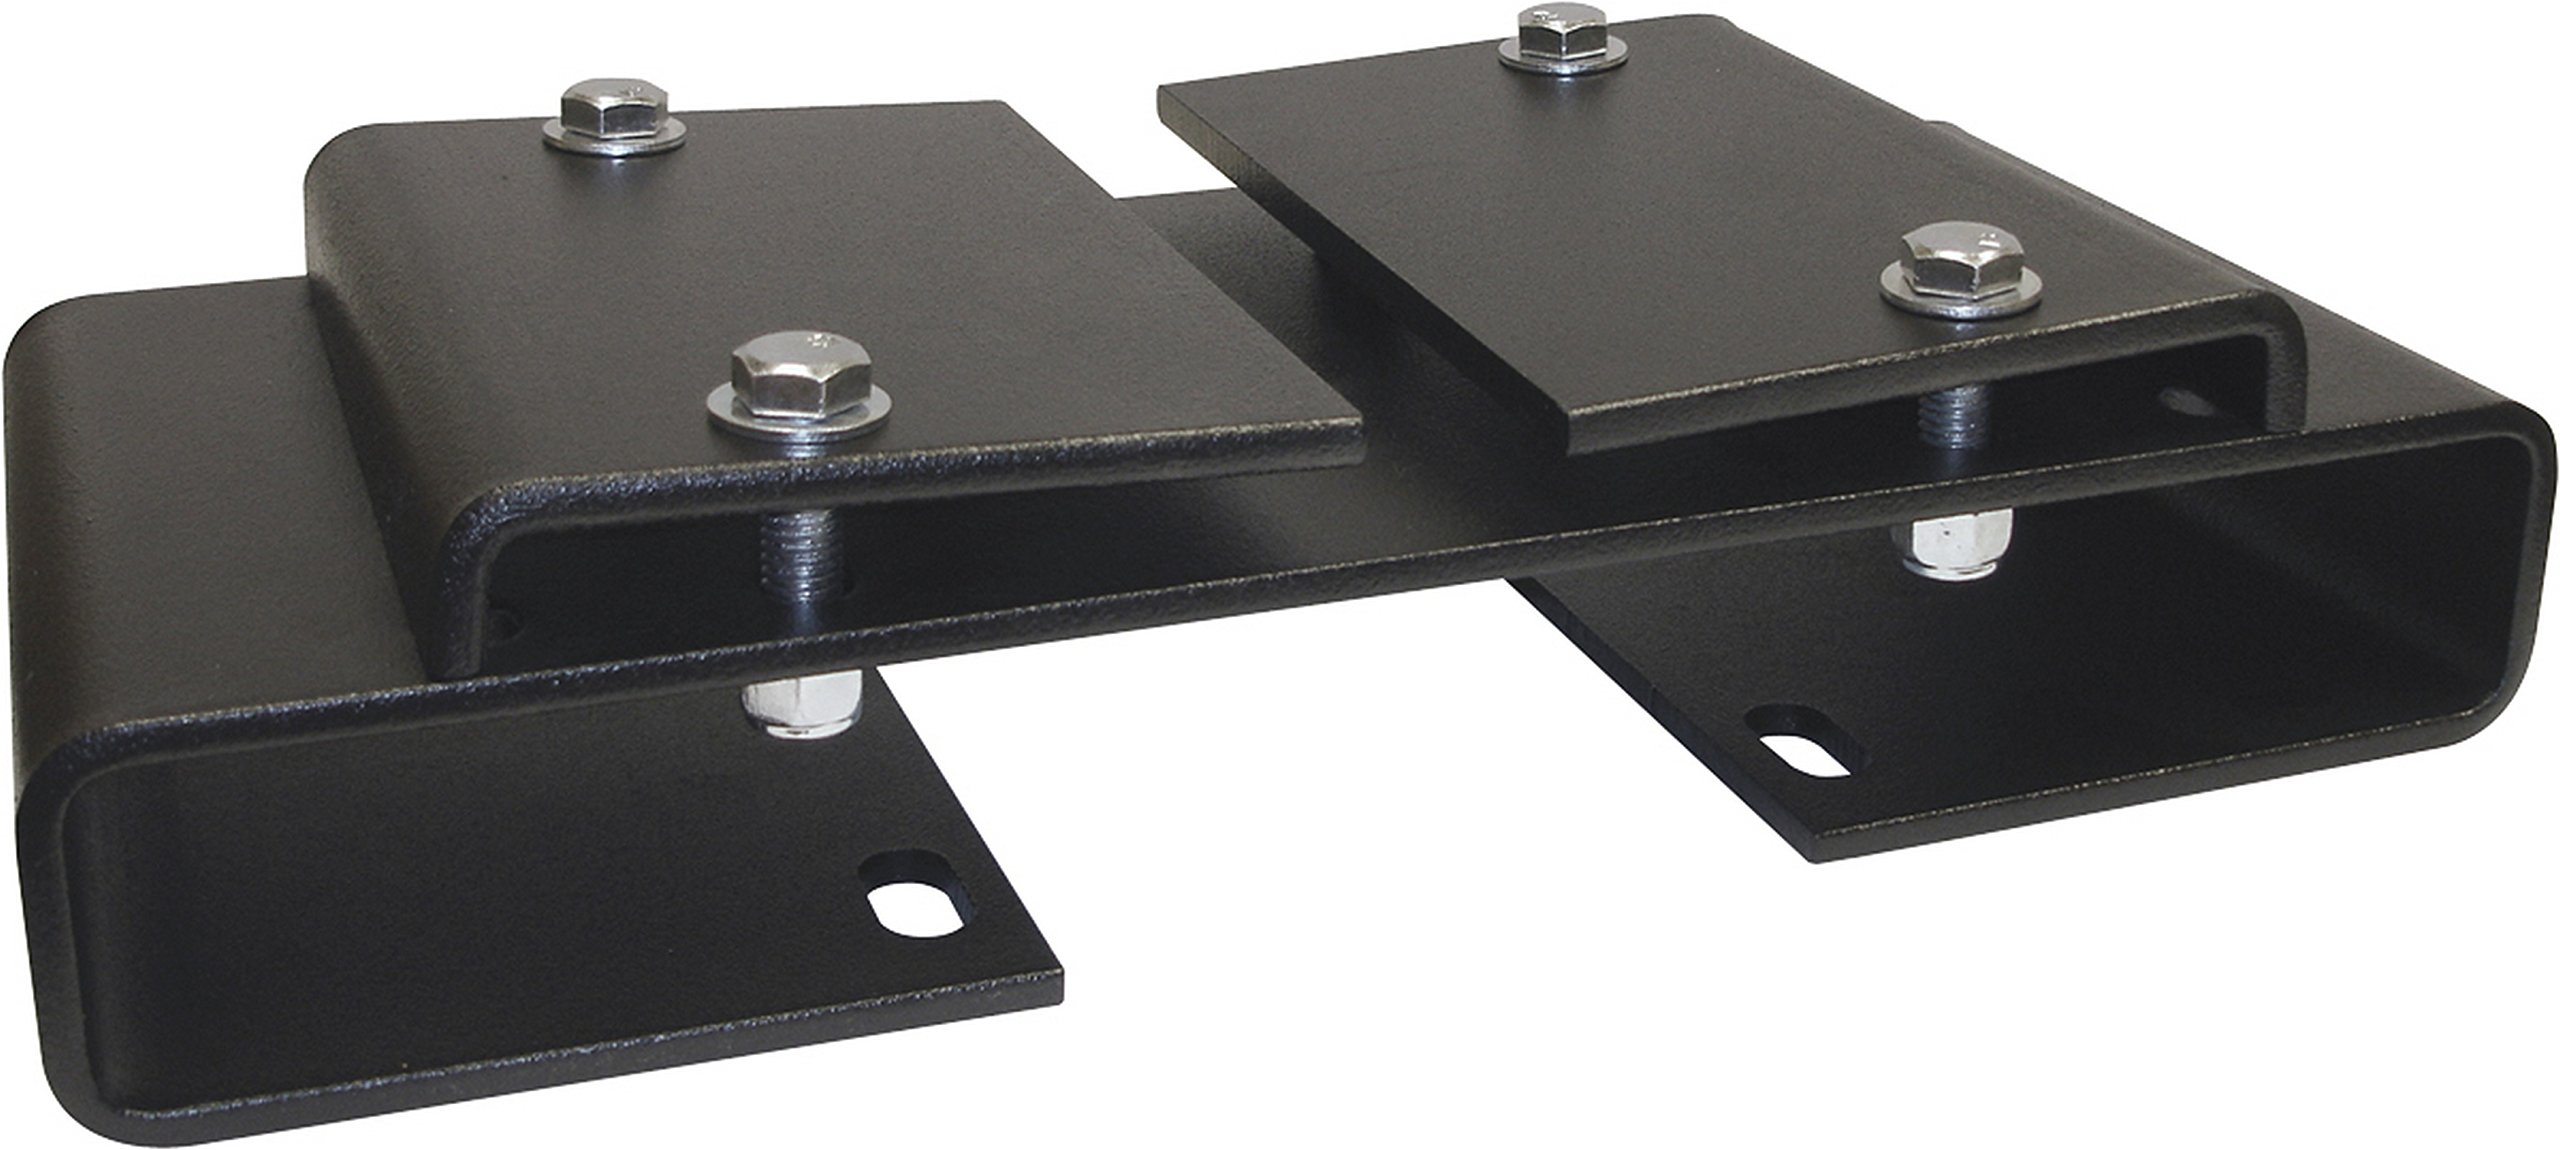 Coxreels MR-1 Steel Mounting Bracket Kit for Spring Driven Reels, Black by Coxreels (Image #1)